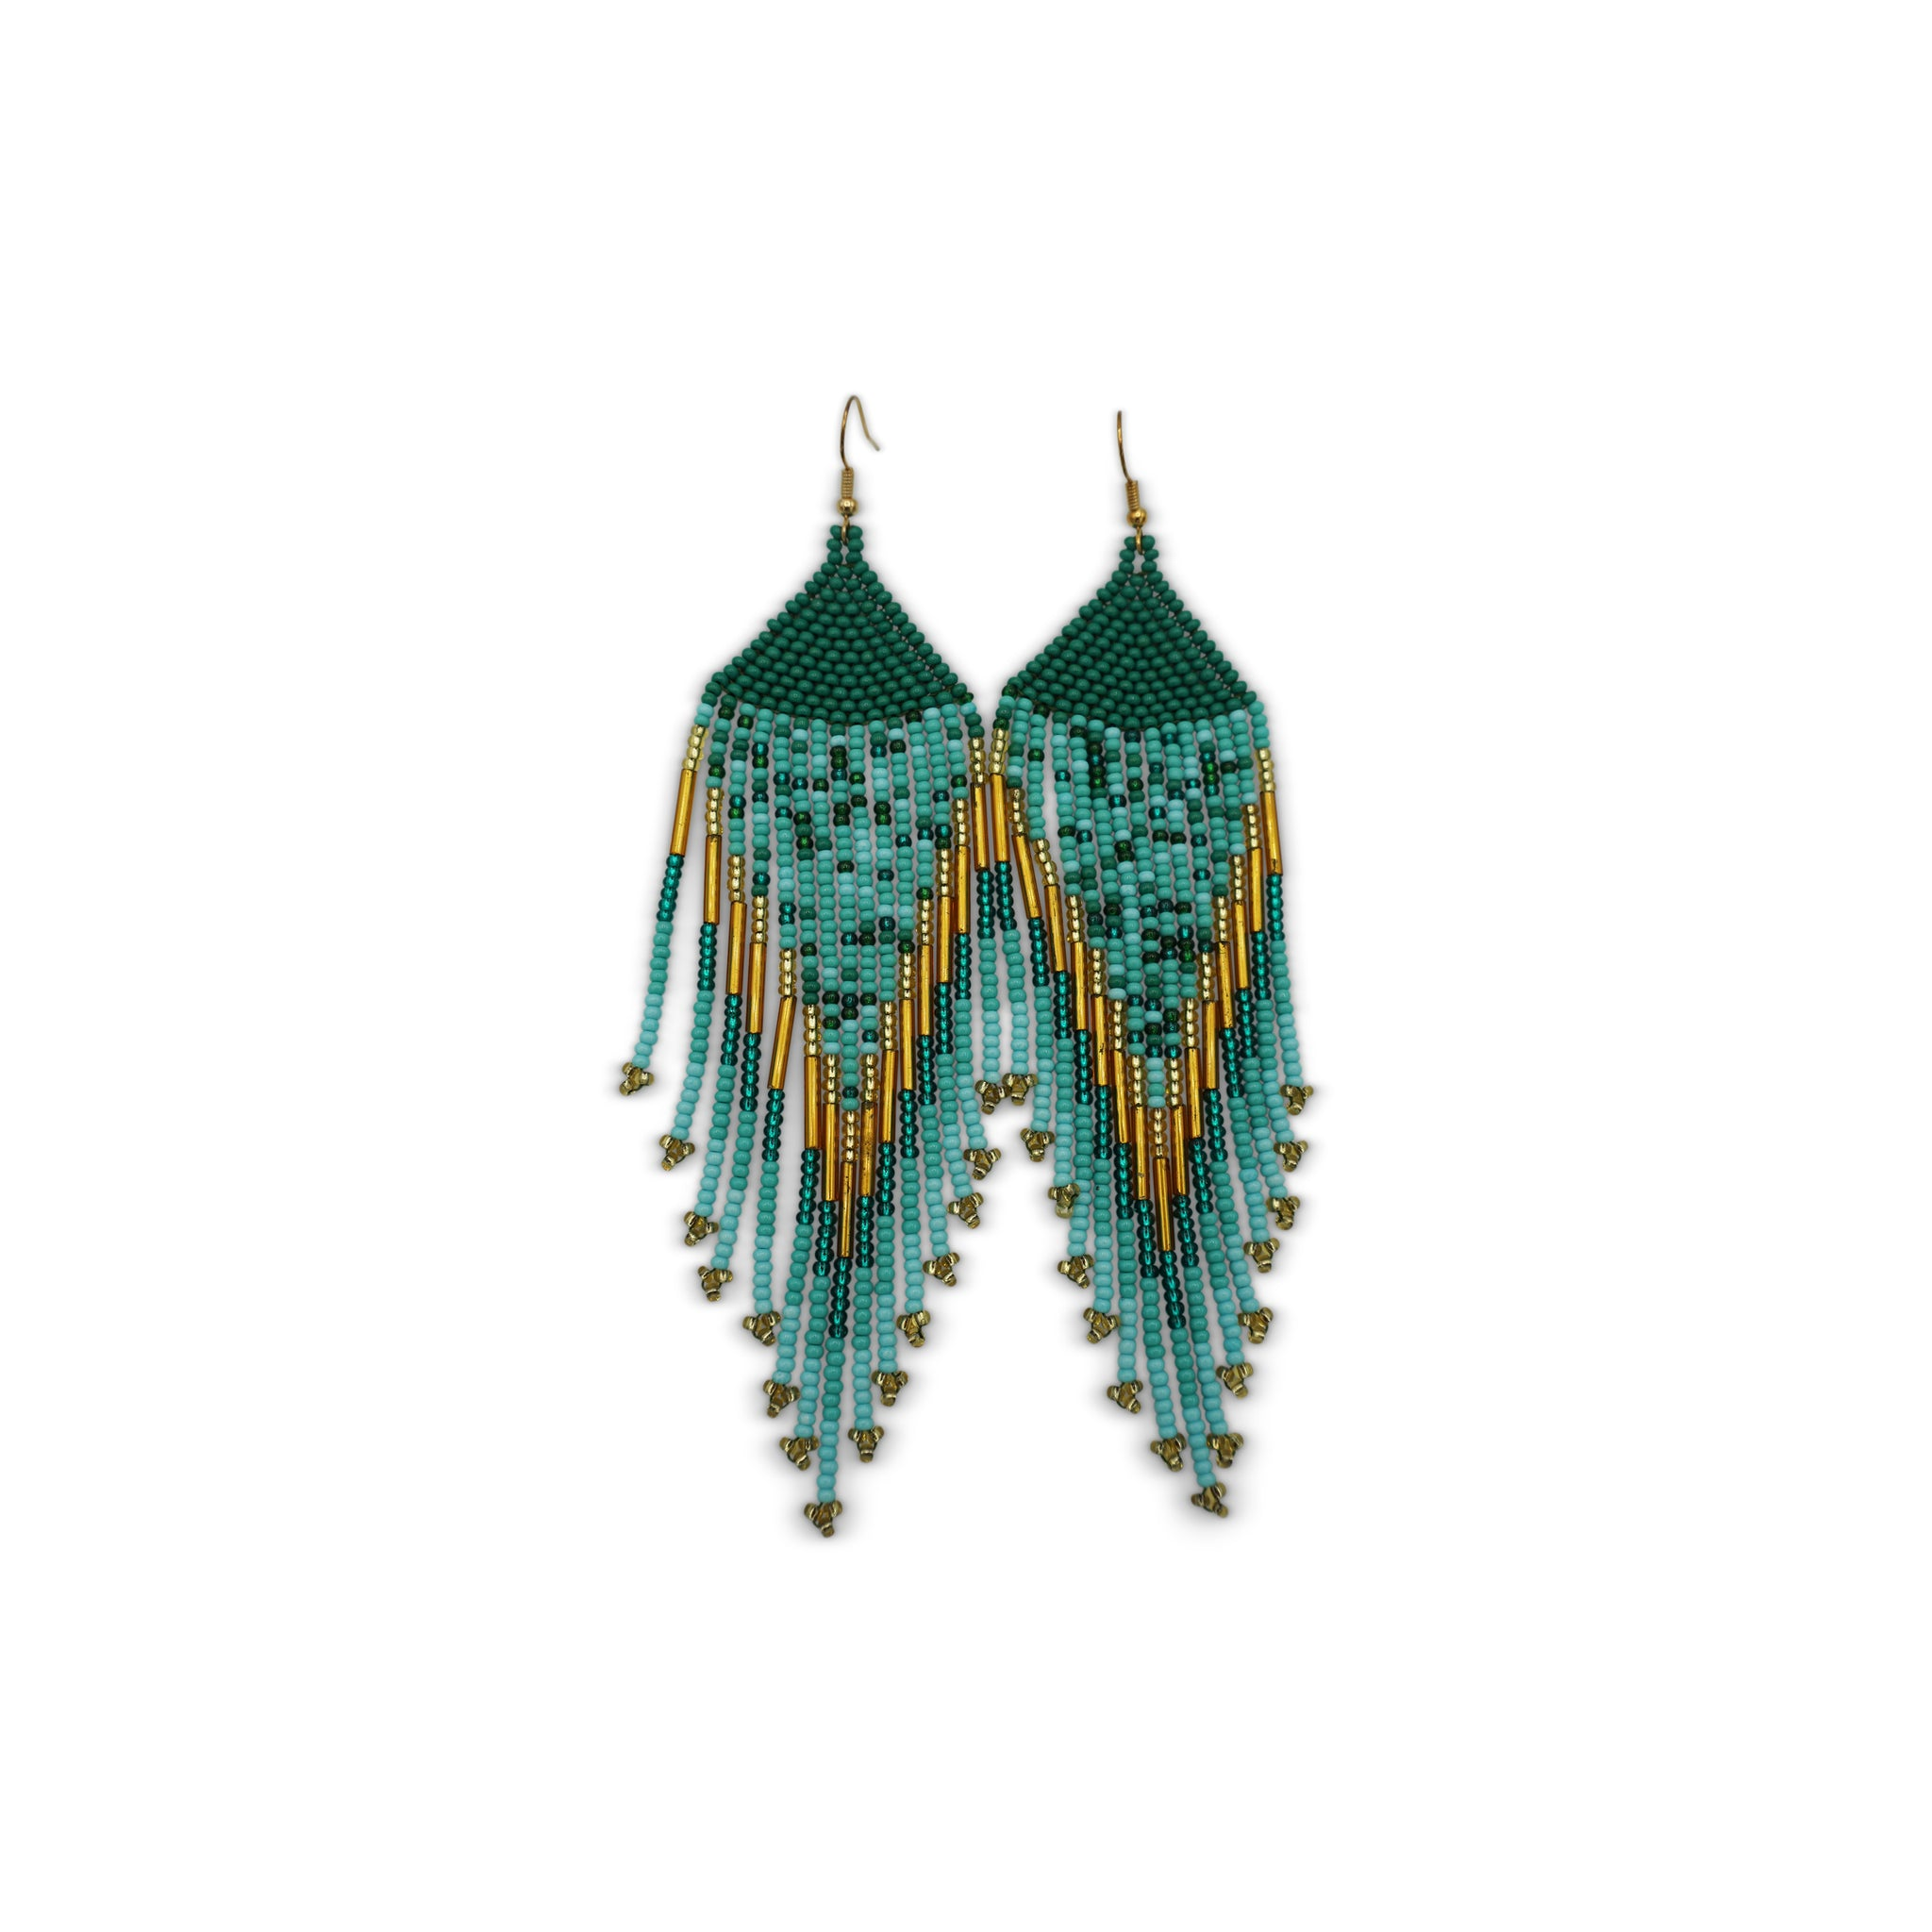 Luisiana: Green Gold Turquoise Chaquira Earrings - Kembra Collection™